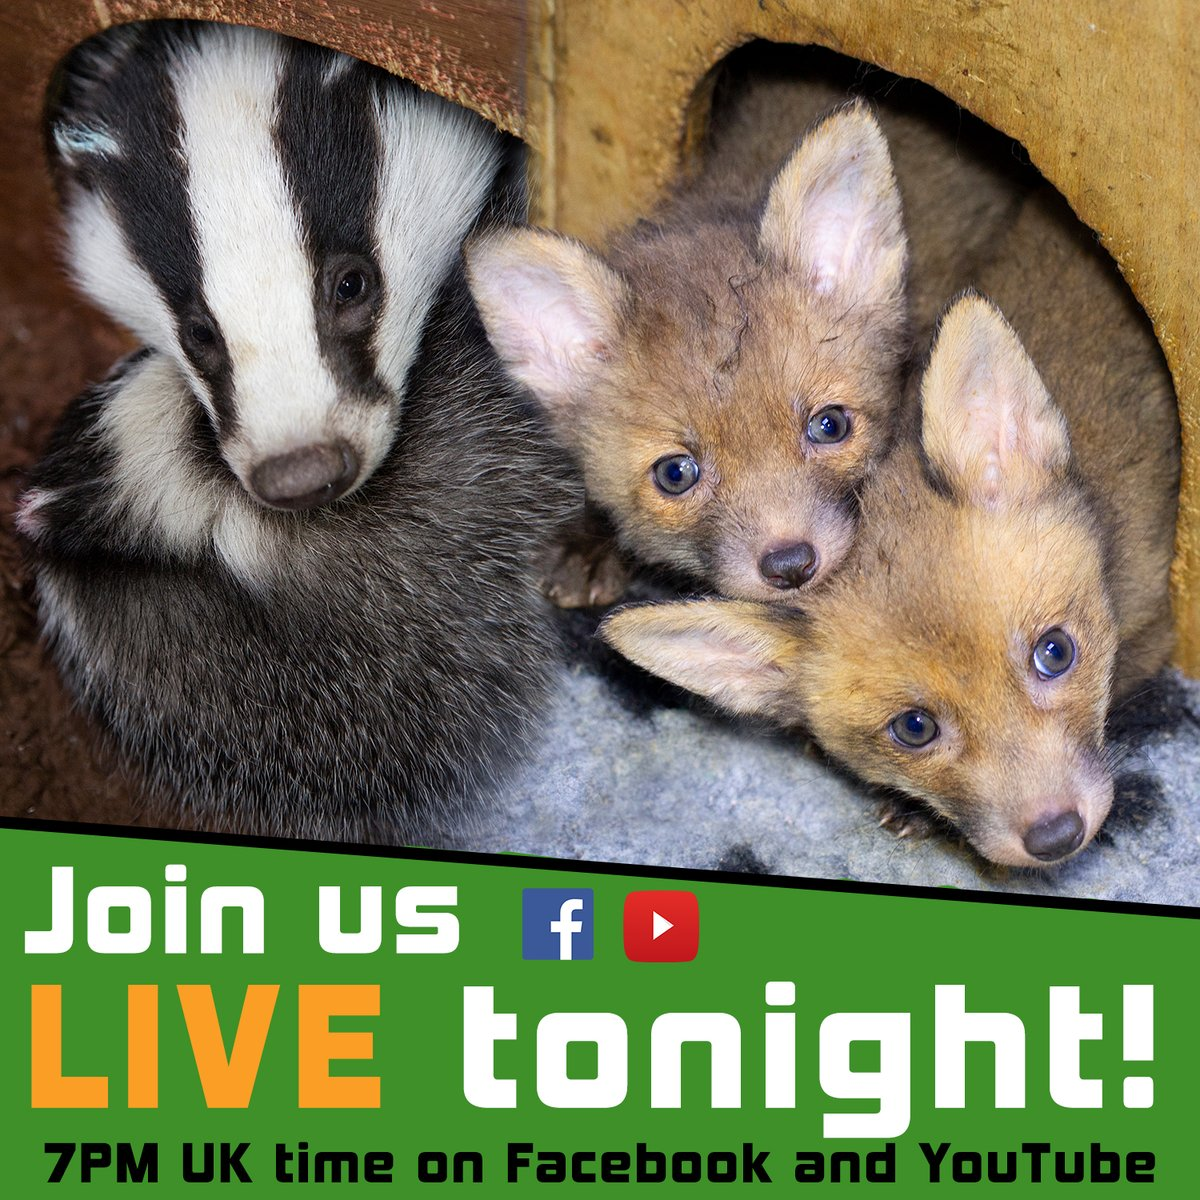 We hope you can join us LIVE this evening on Facebook and YouTube for our first #livestream of the year!  Featuring centre updates, recent rescues, an update on our new developments and, of course, a Q&A session it should be a fun hour!  Hope to see you there!